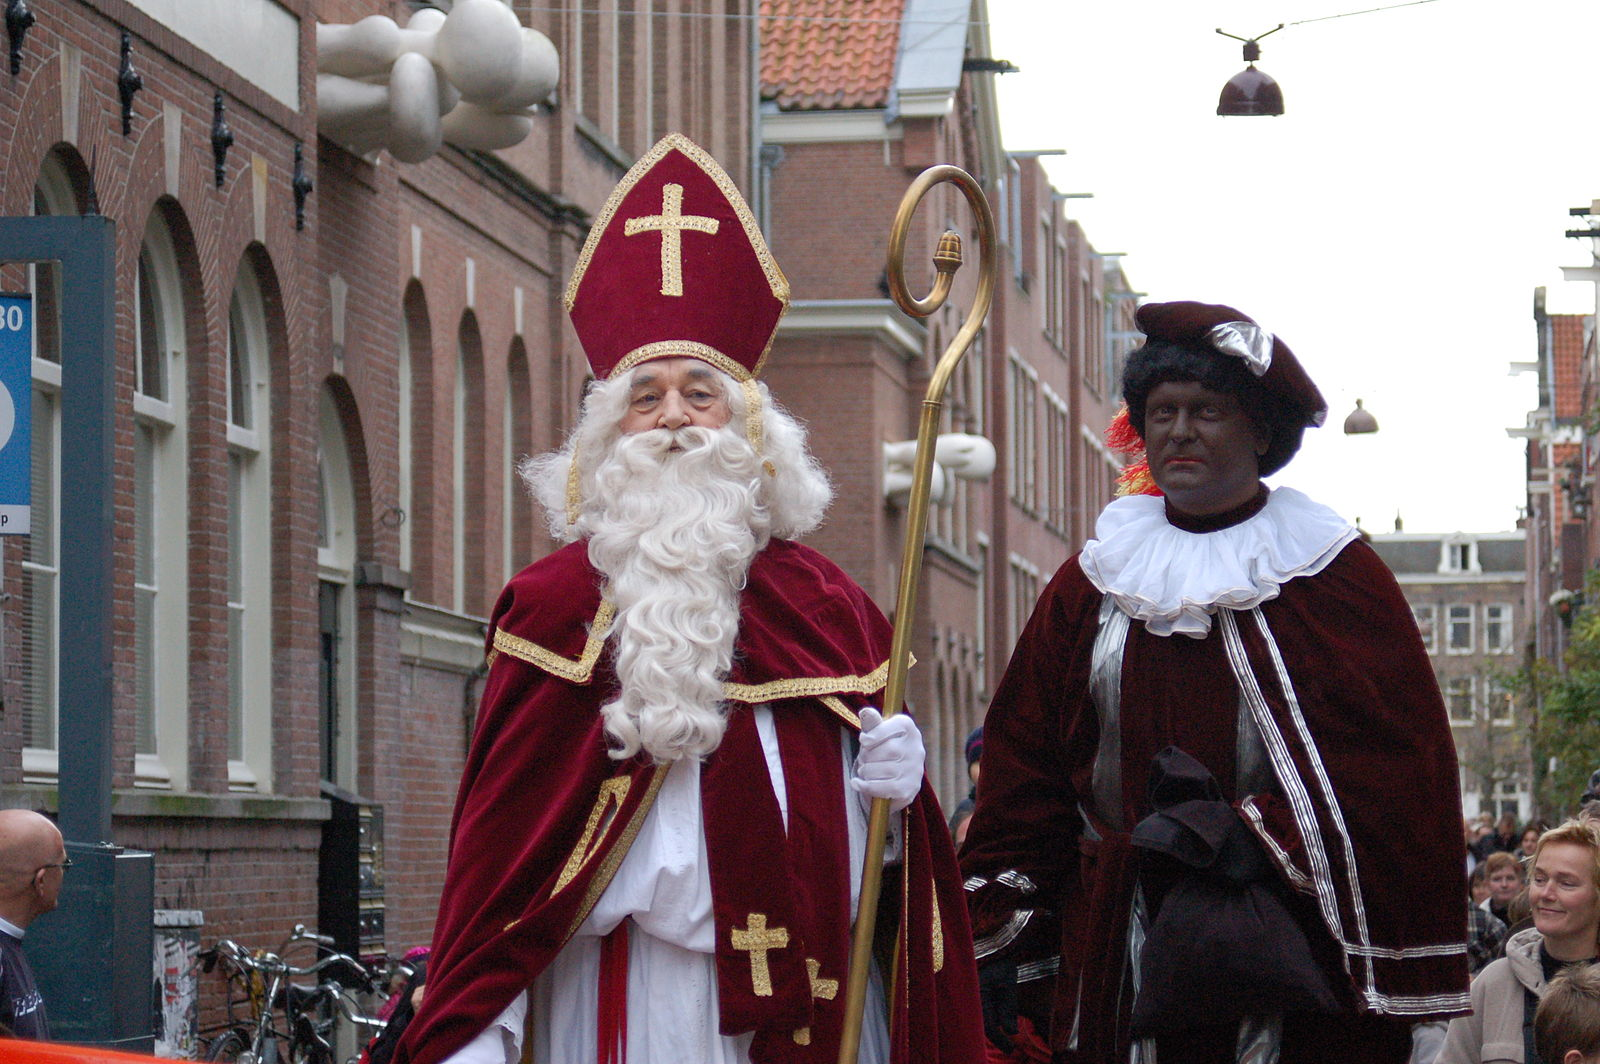 Two people, Sinterklaas (left) and Zwarte Piet (left) appear in costume. Zwarte Piet is played by a person in blackface, dressed in a white fulled collar and maroon garments. Sinterklaas wears red robes and an elaborate headgear, and carries a staff.